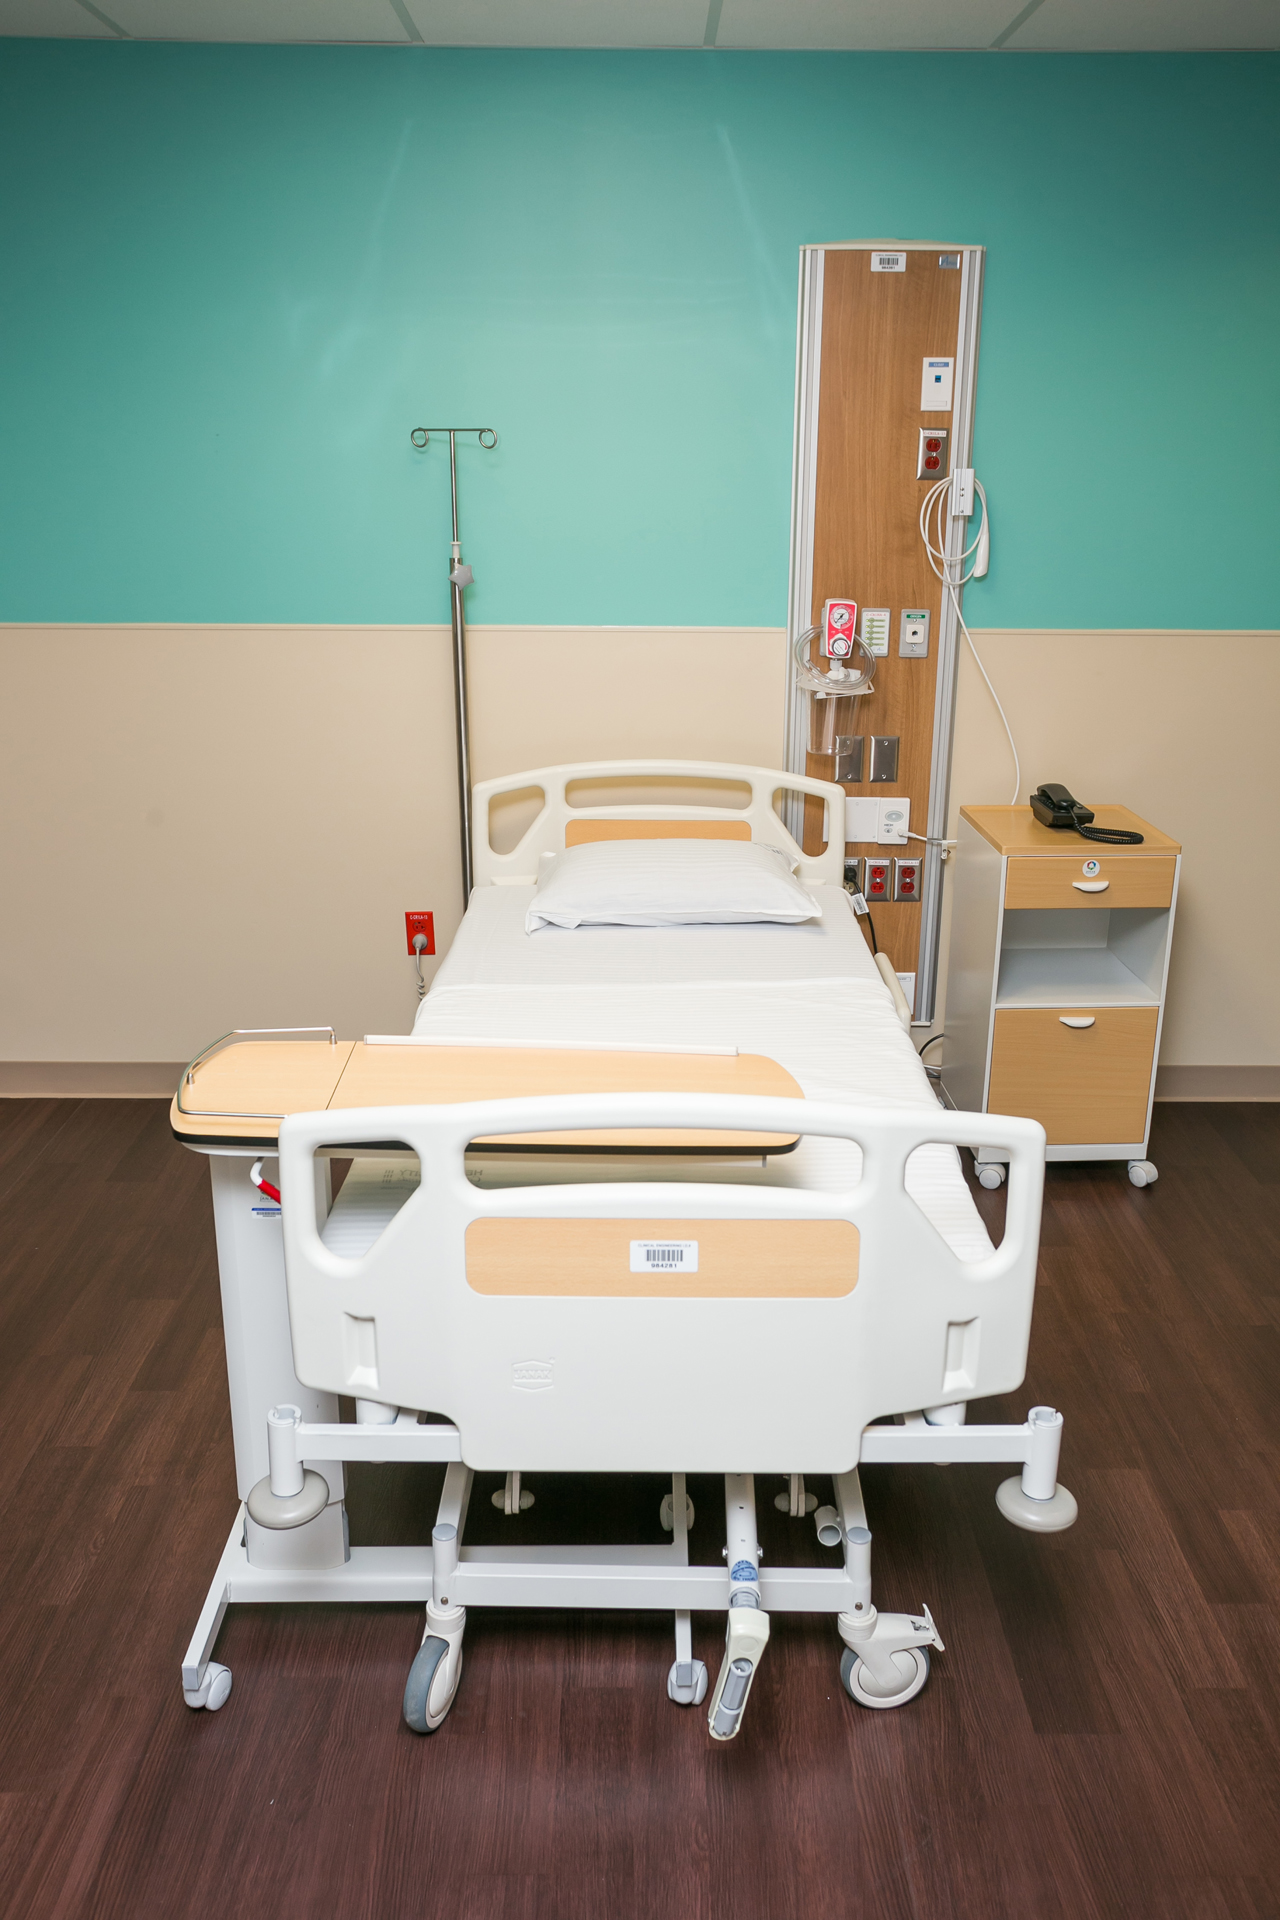 Health City single patient bed